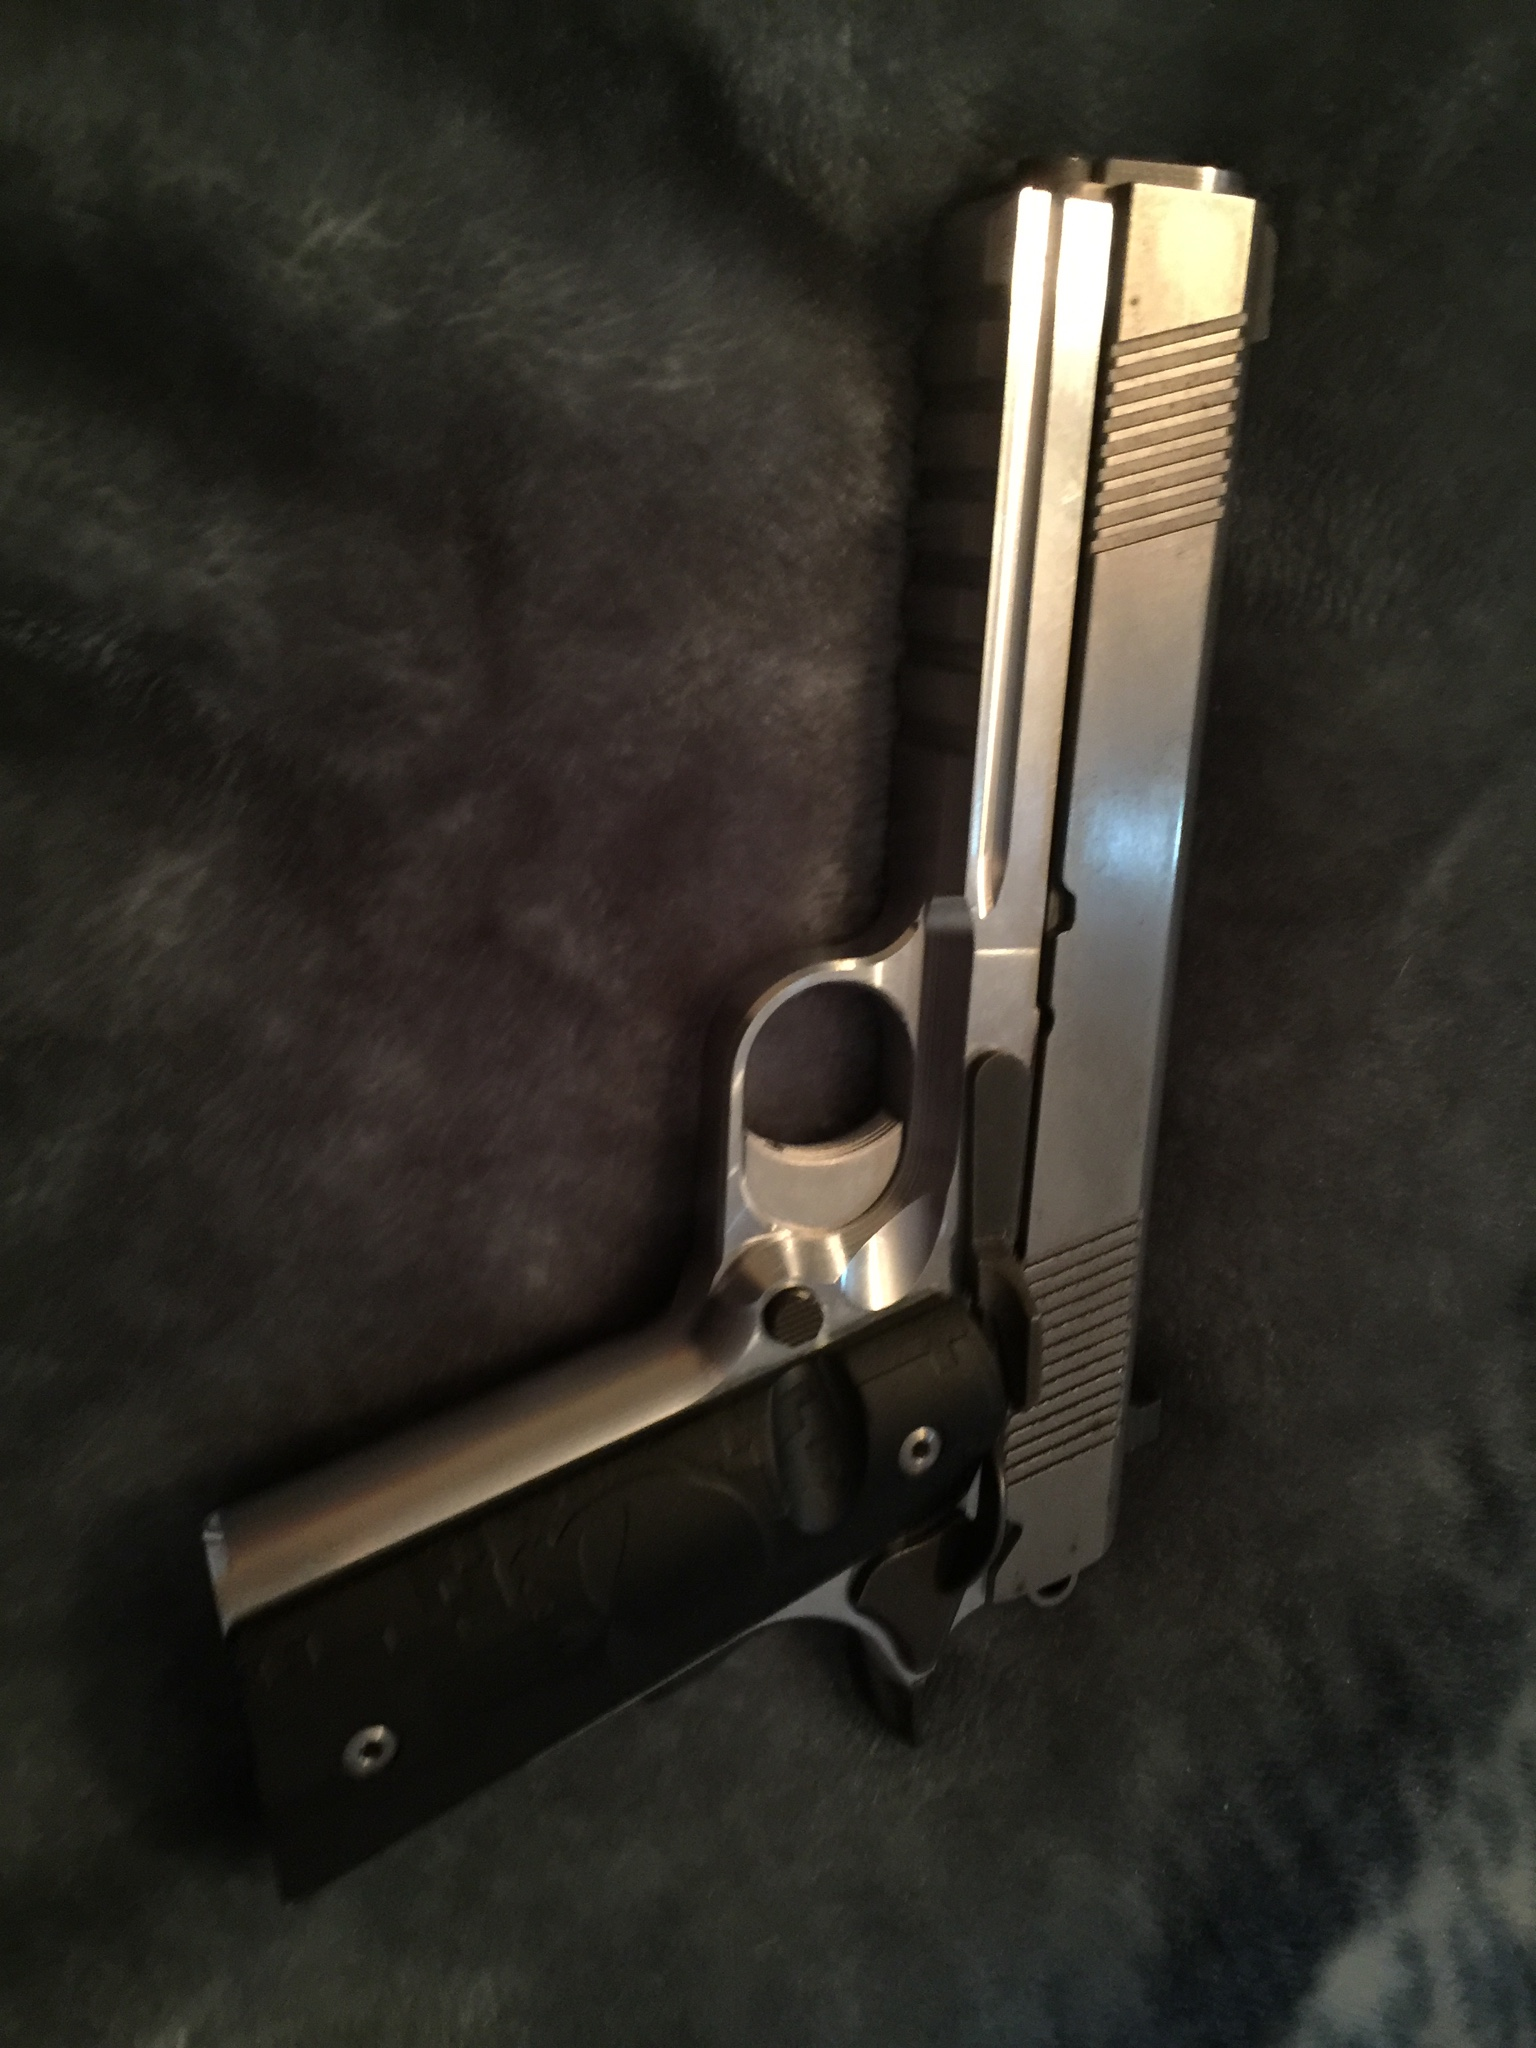 80% 1911 Stainless steel, full size, railed frame, who has